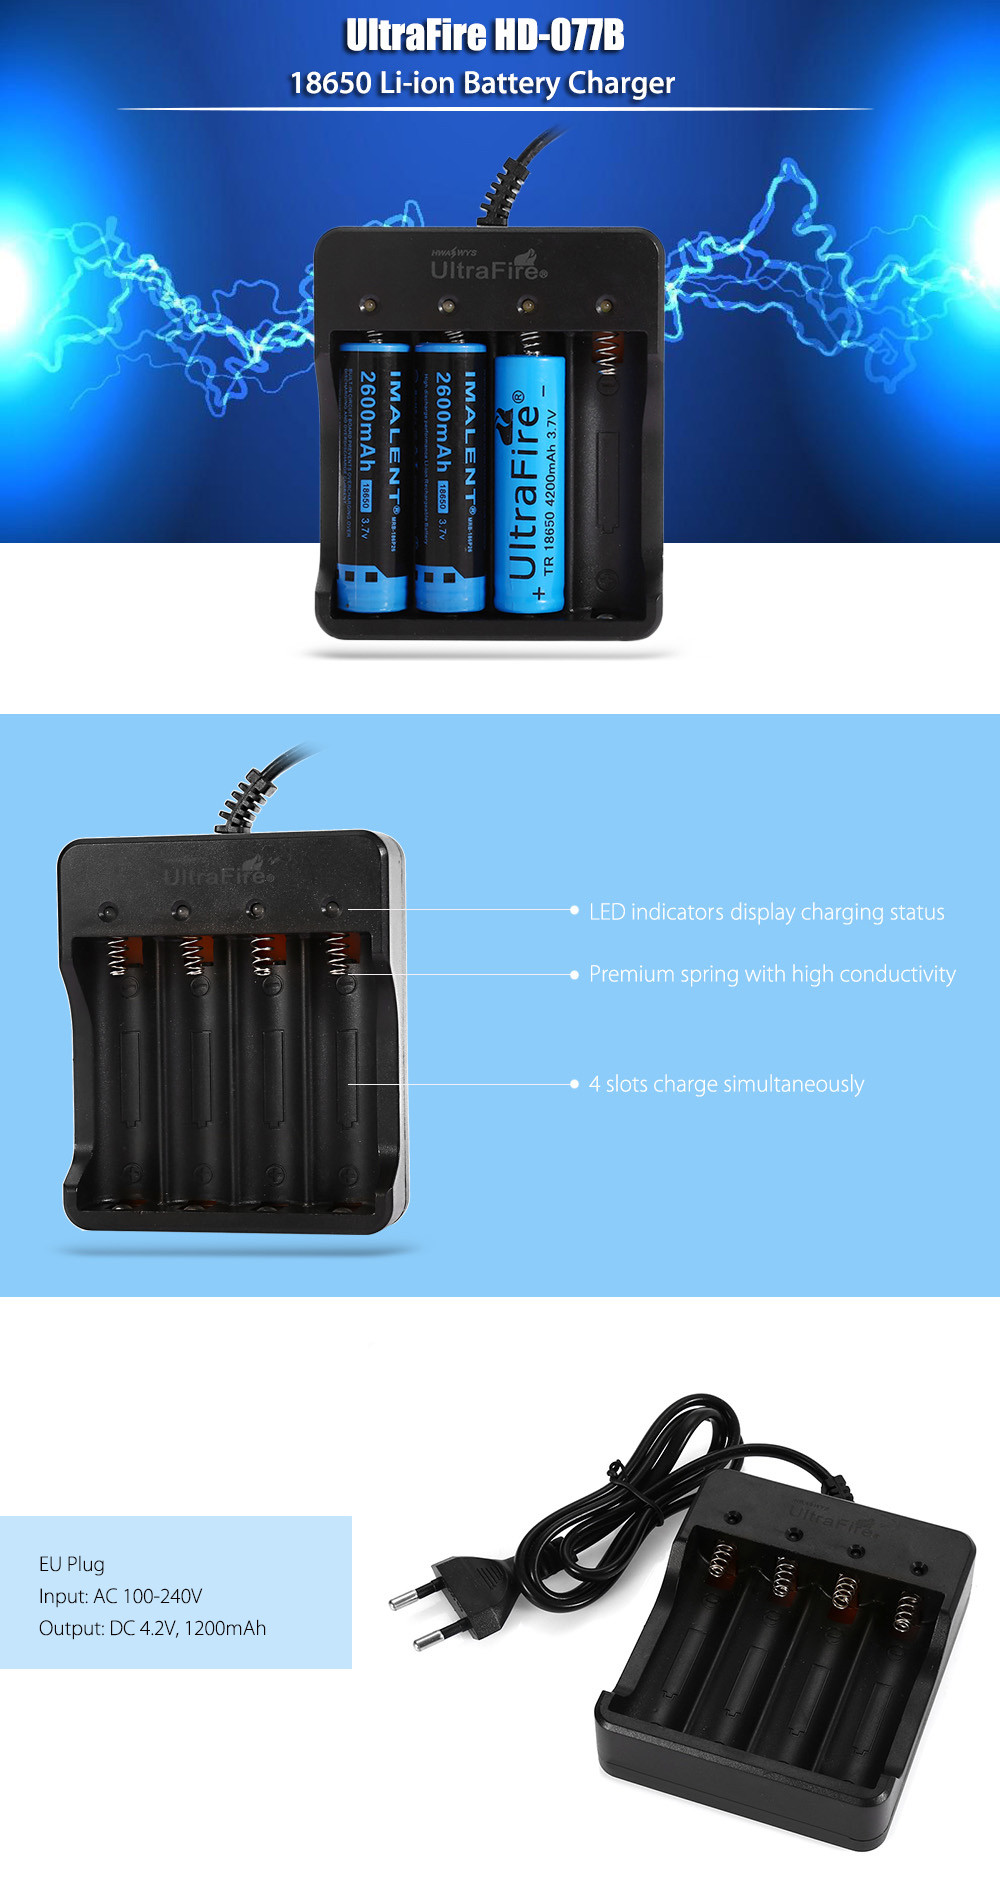 UltraFire HD - 077B 4 Slots 18650 Lithium-ion Battery Charger